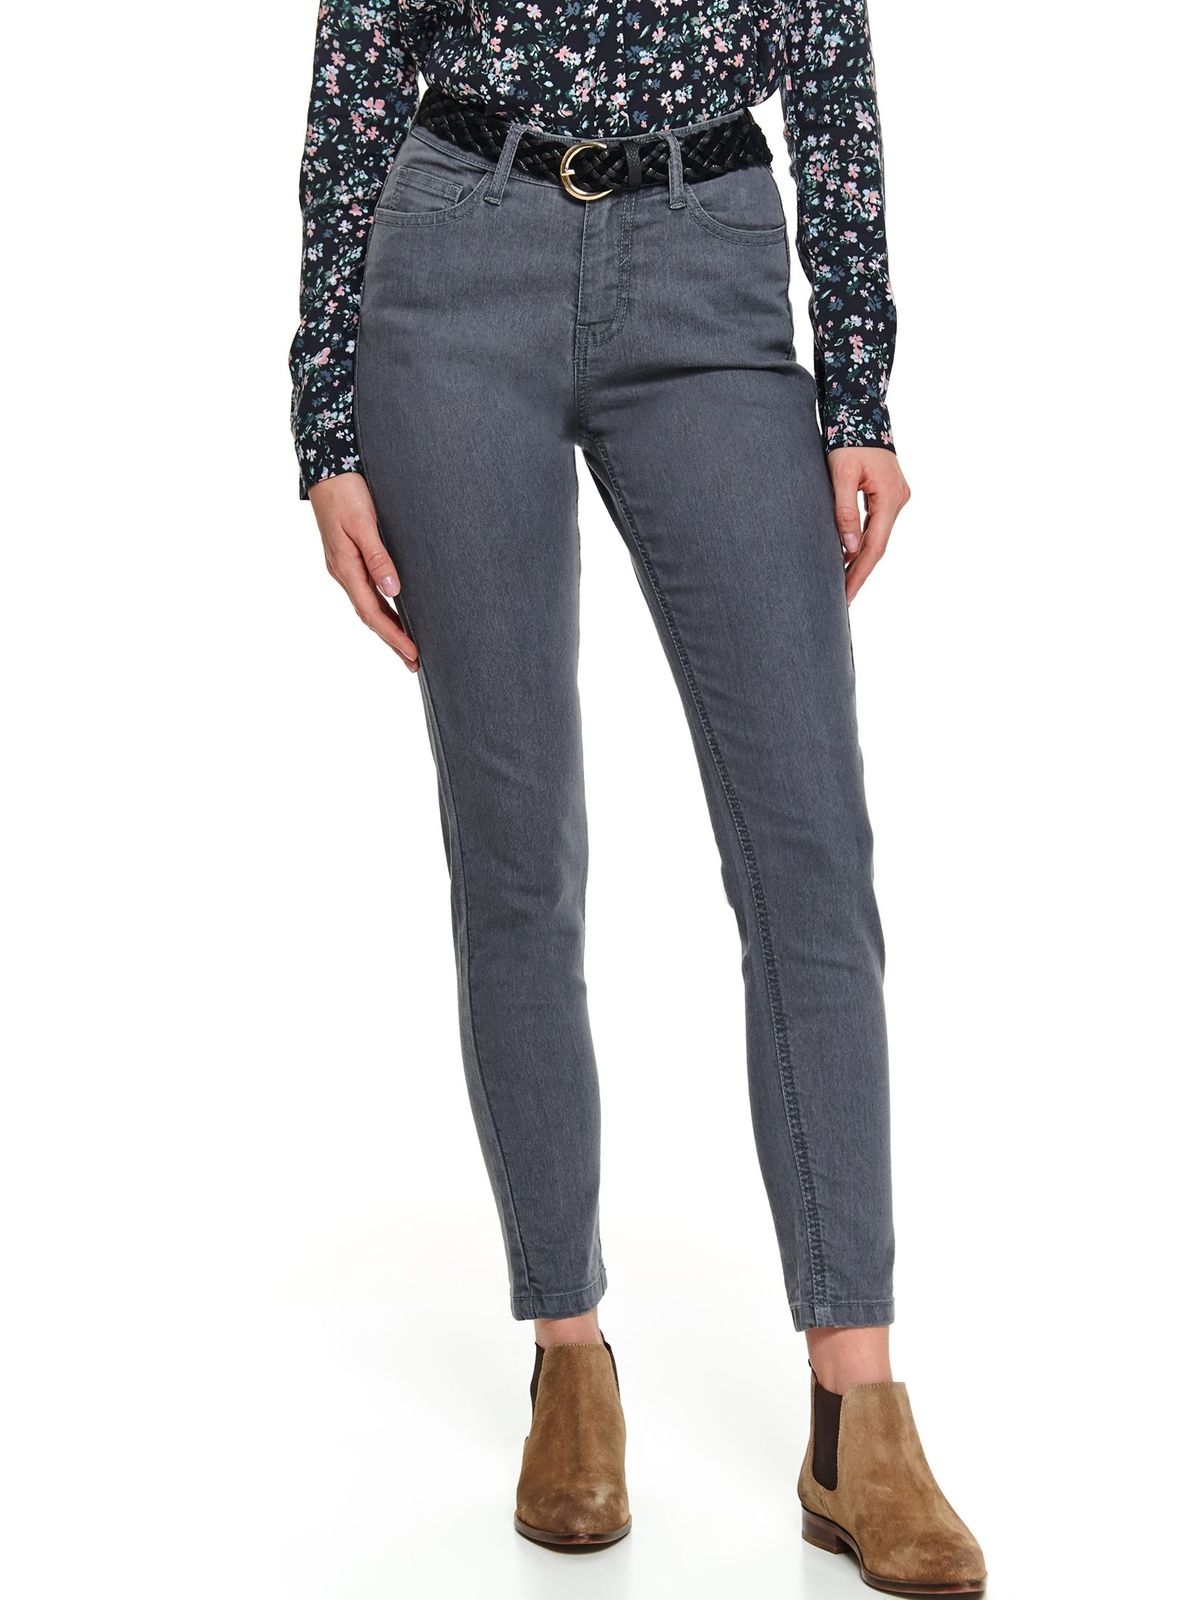 Grey trousers casual conical denim with pockets